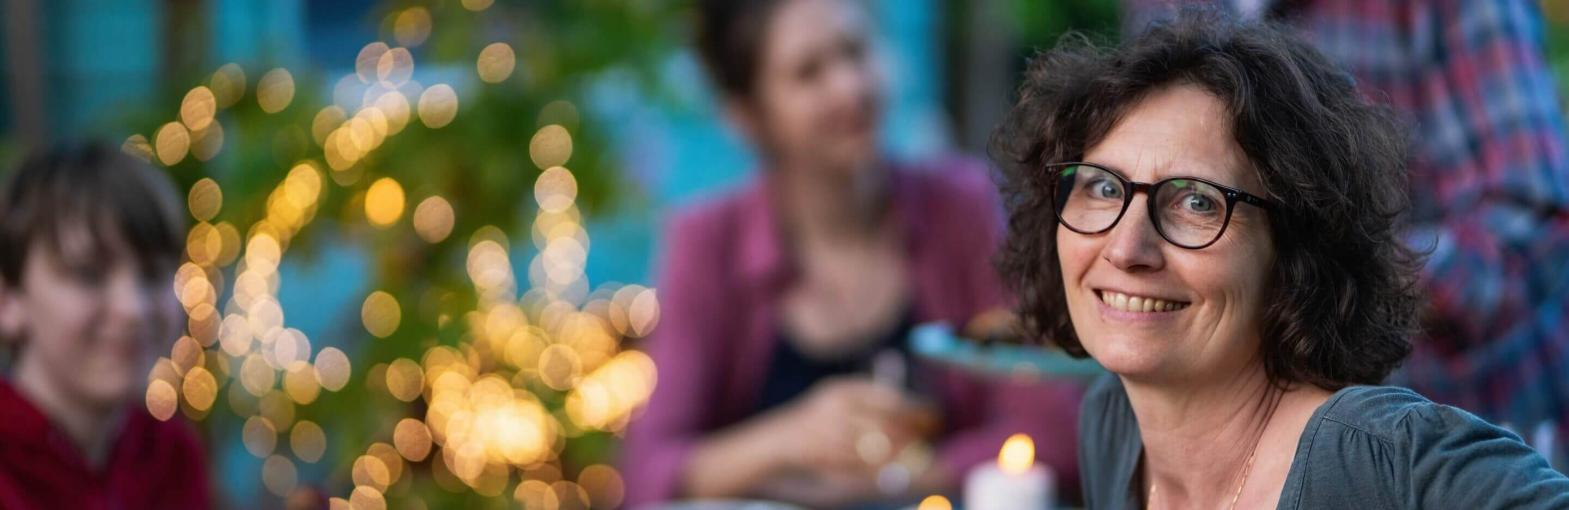 Woman eating outside at night with her family